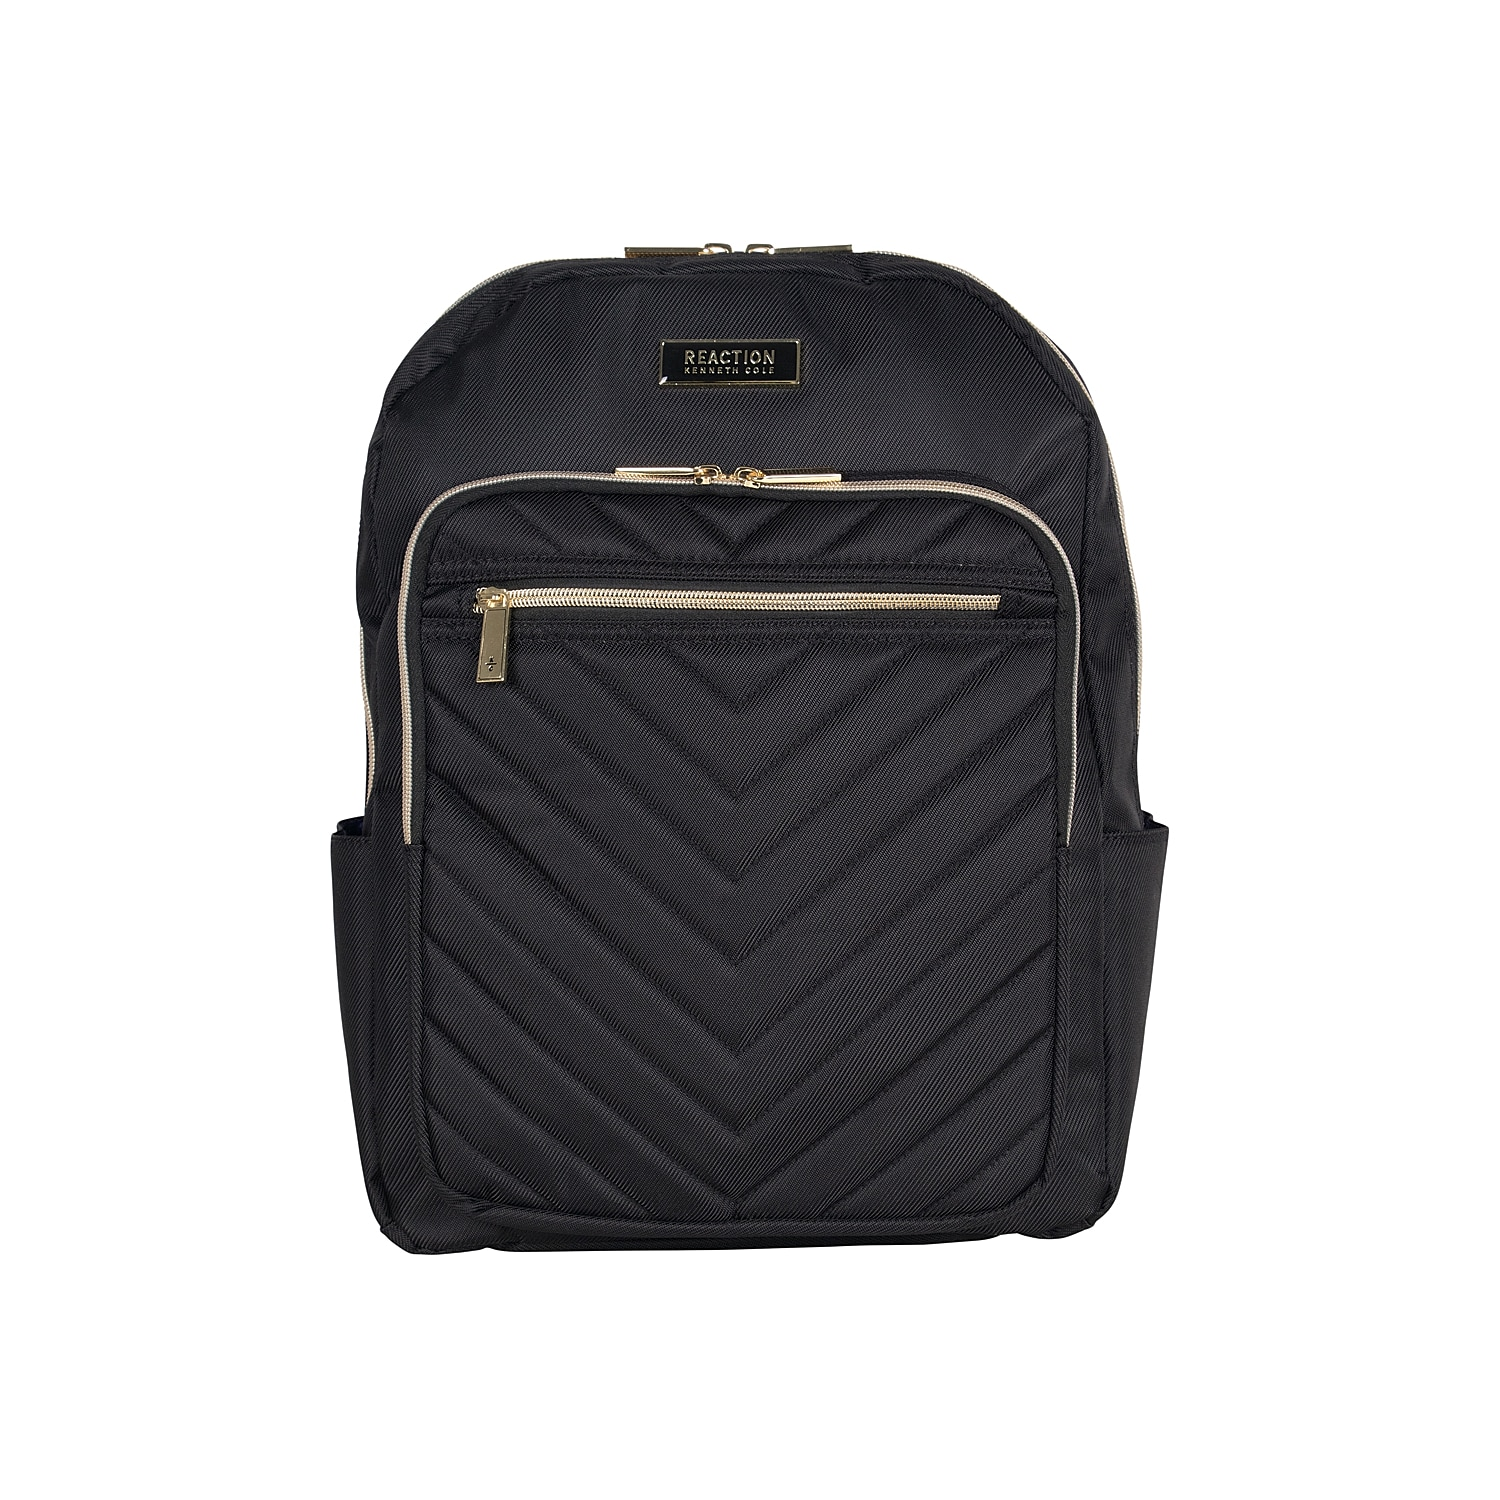 Whether you use the Chevron backpack every day or just for traveling, this laptop bag from Kenneth Cole Reaction will keep personal items secure. Designed to protect technology with its padded lining, this essential accessory is spacious and organized. A rear trolley strap fits over most upright luggage handles for versatile carrying.